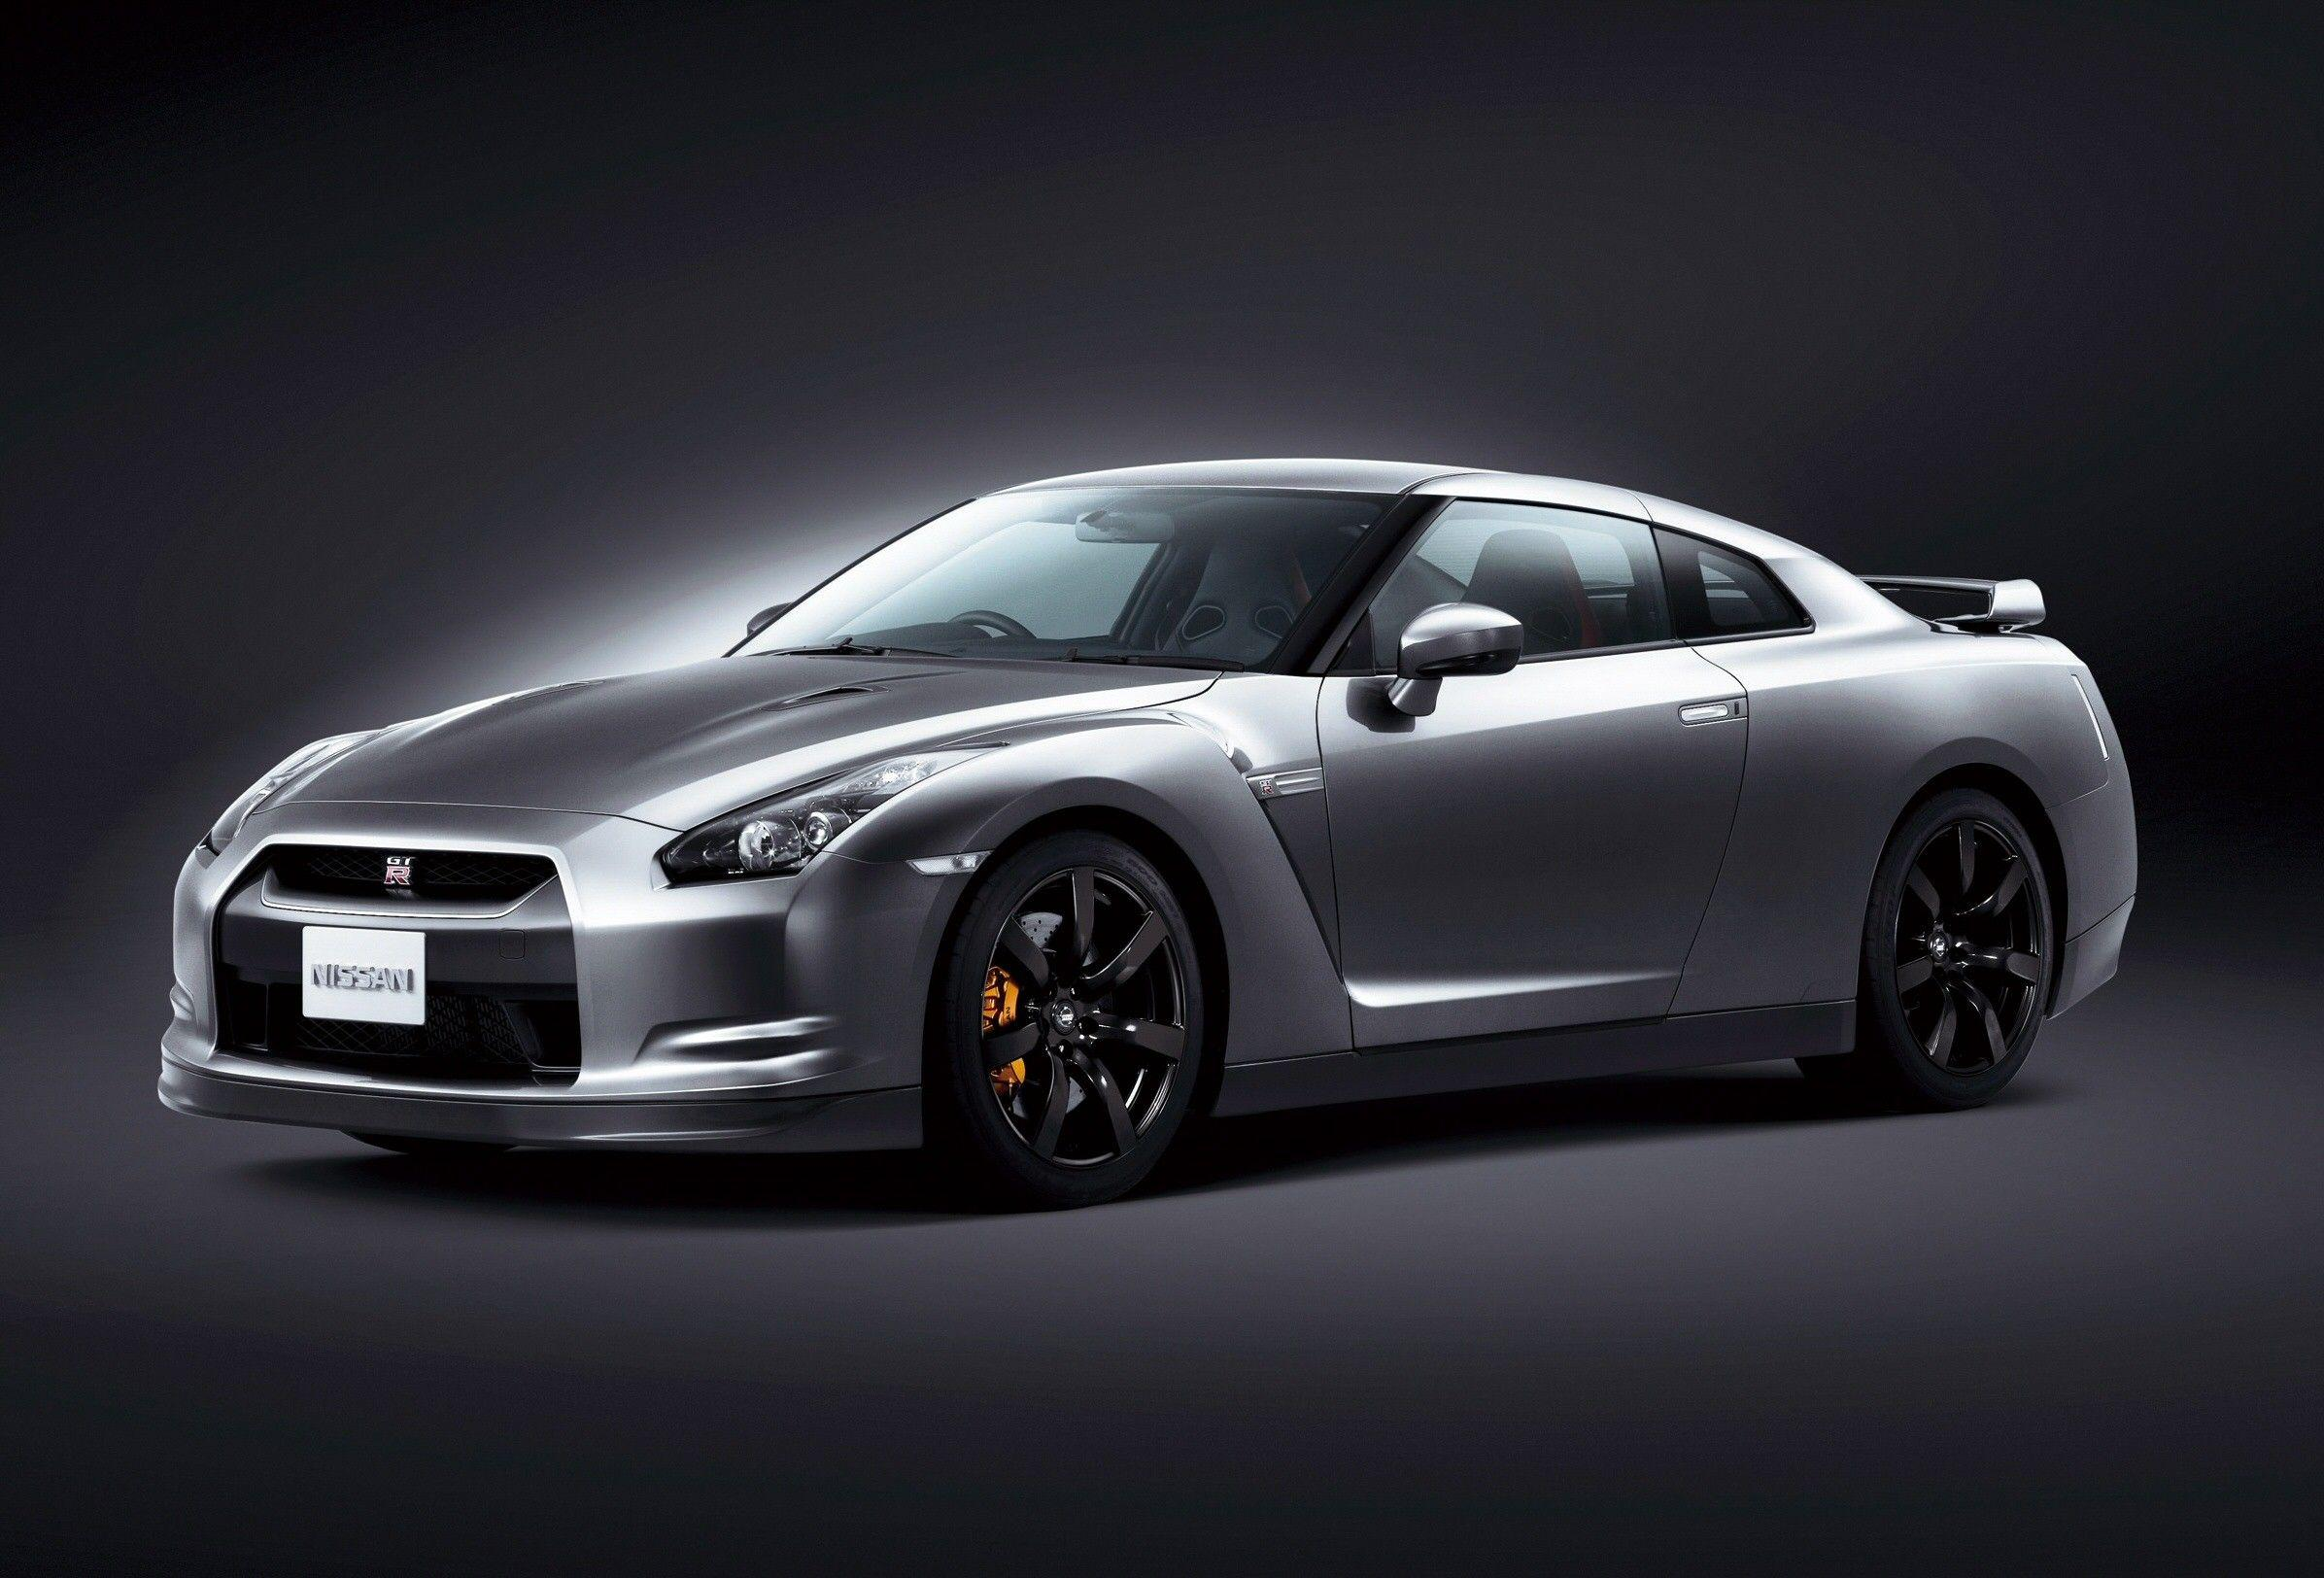 cars nissan r35 gt - photo #29